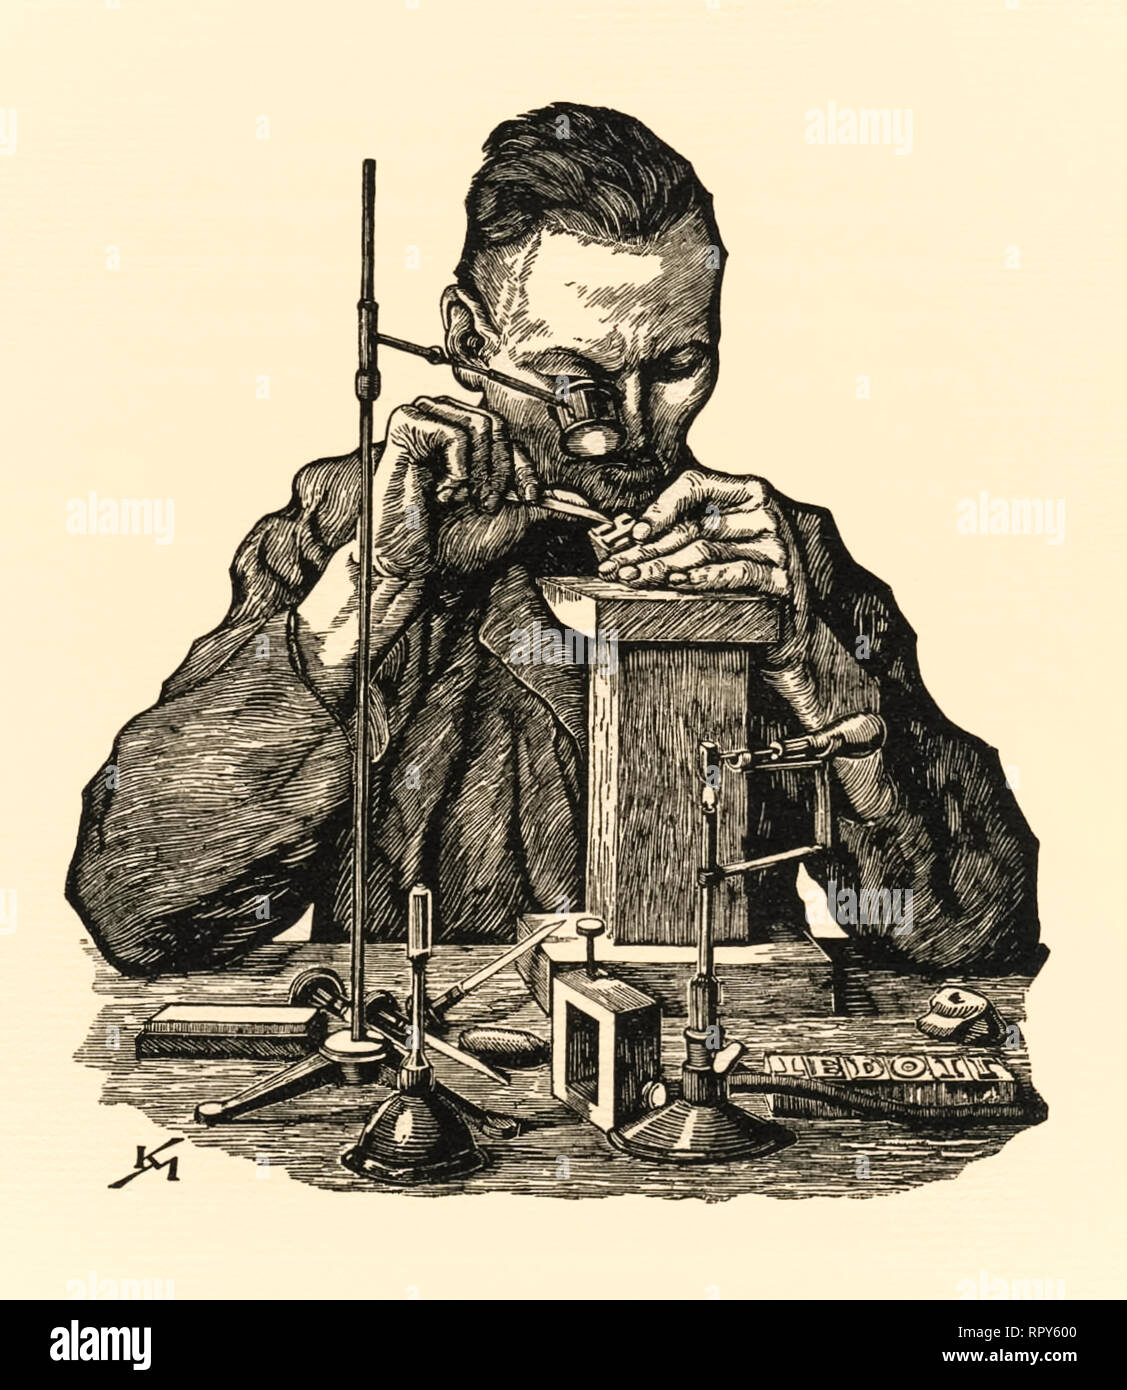 Preparing metal type for use in letterpress printing. Here a cast metal glyph is inspected a metal sort using a loupe and deburring the face with a tool. Woodcut by Karl Mahr (1890-1945). - Stock Image